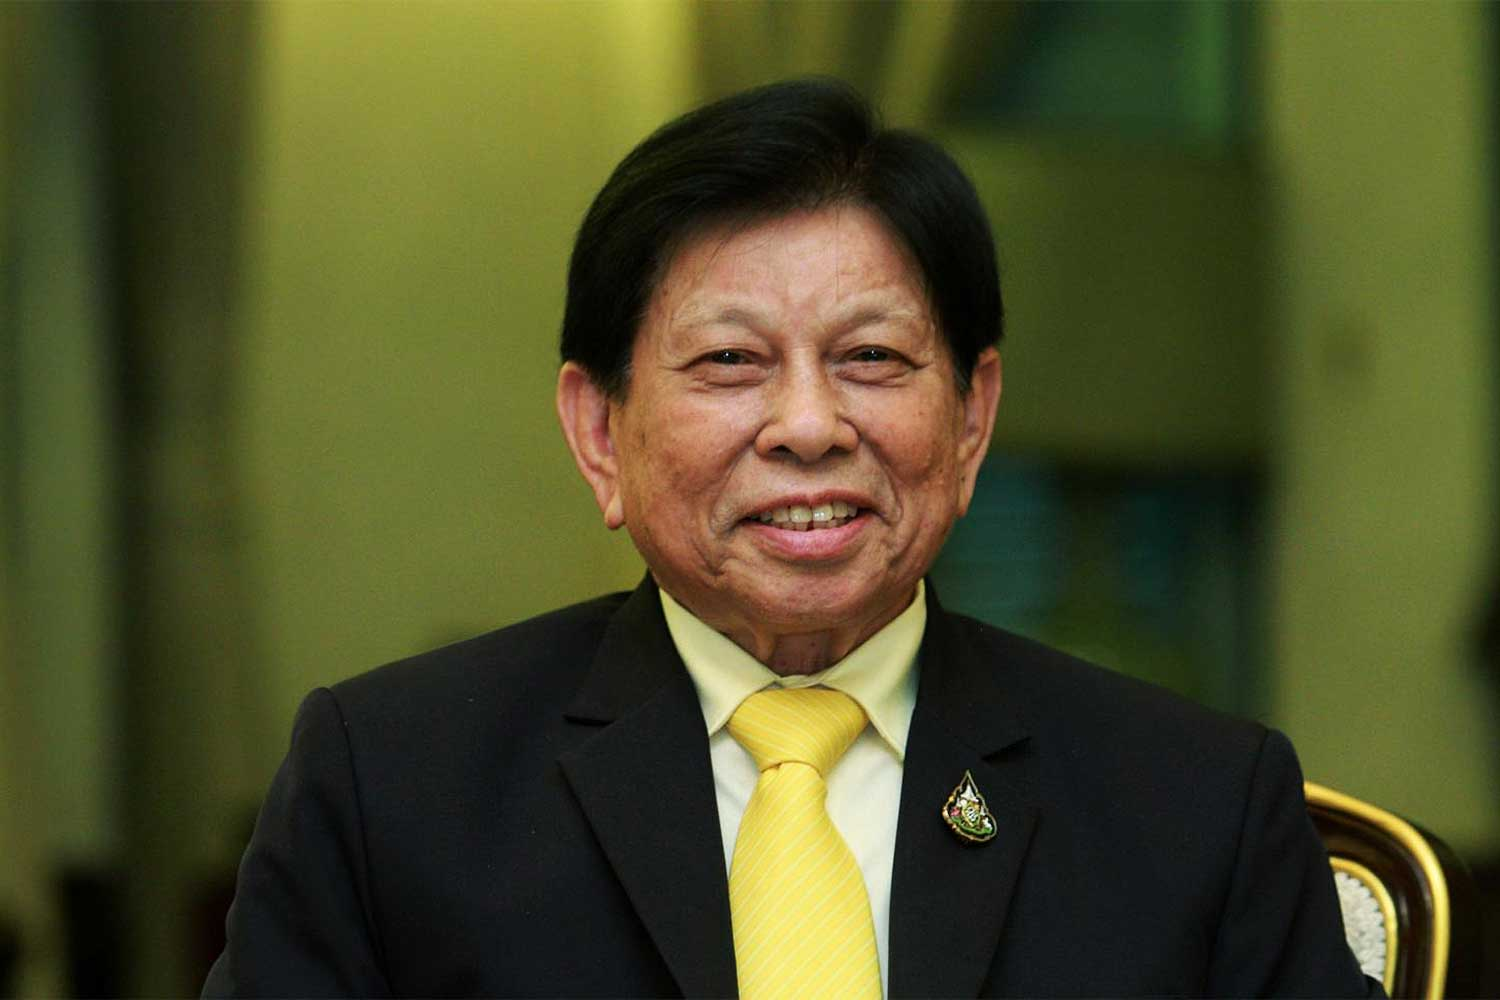 Sanit Aksornkaew, chairman of the Office of the National Economic and Social Development Council (NESDC). (Photo by Pawat Laopaisarntaksin)